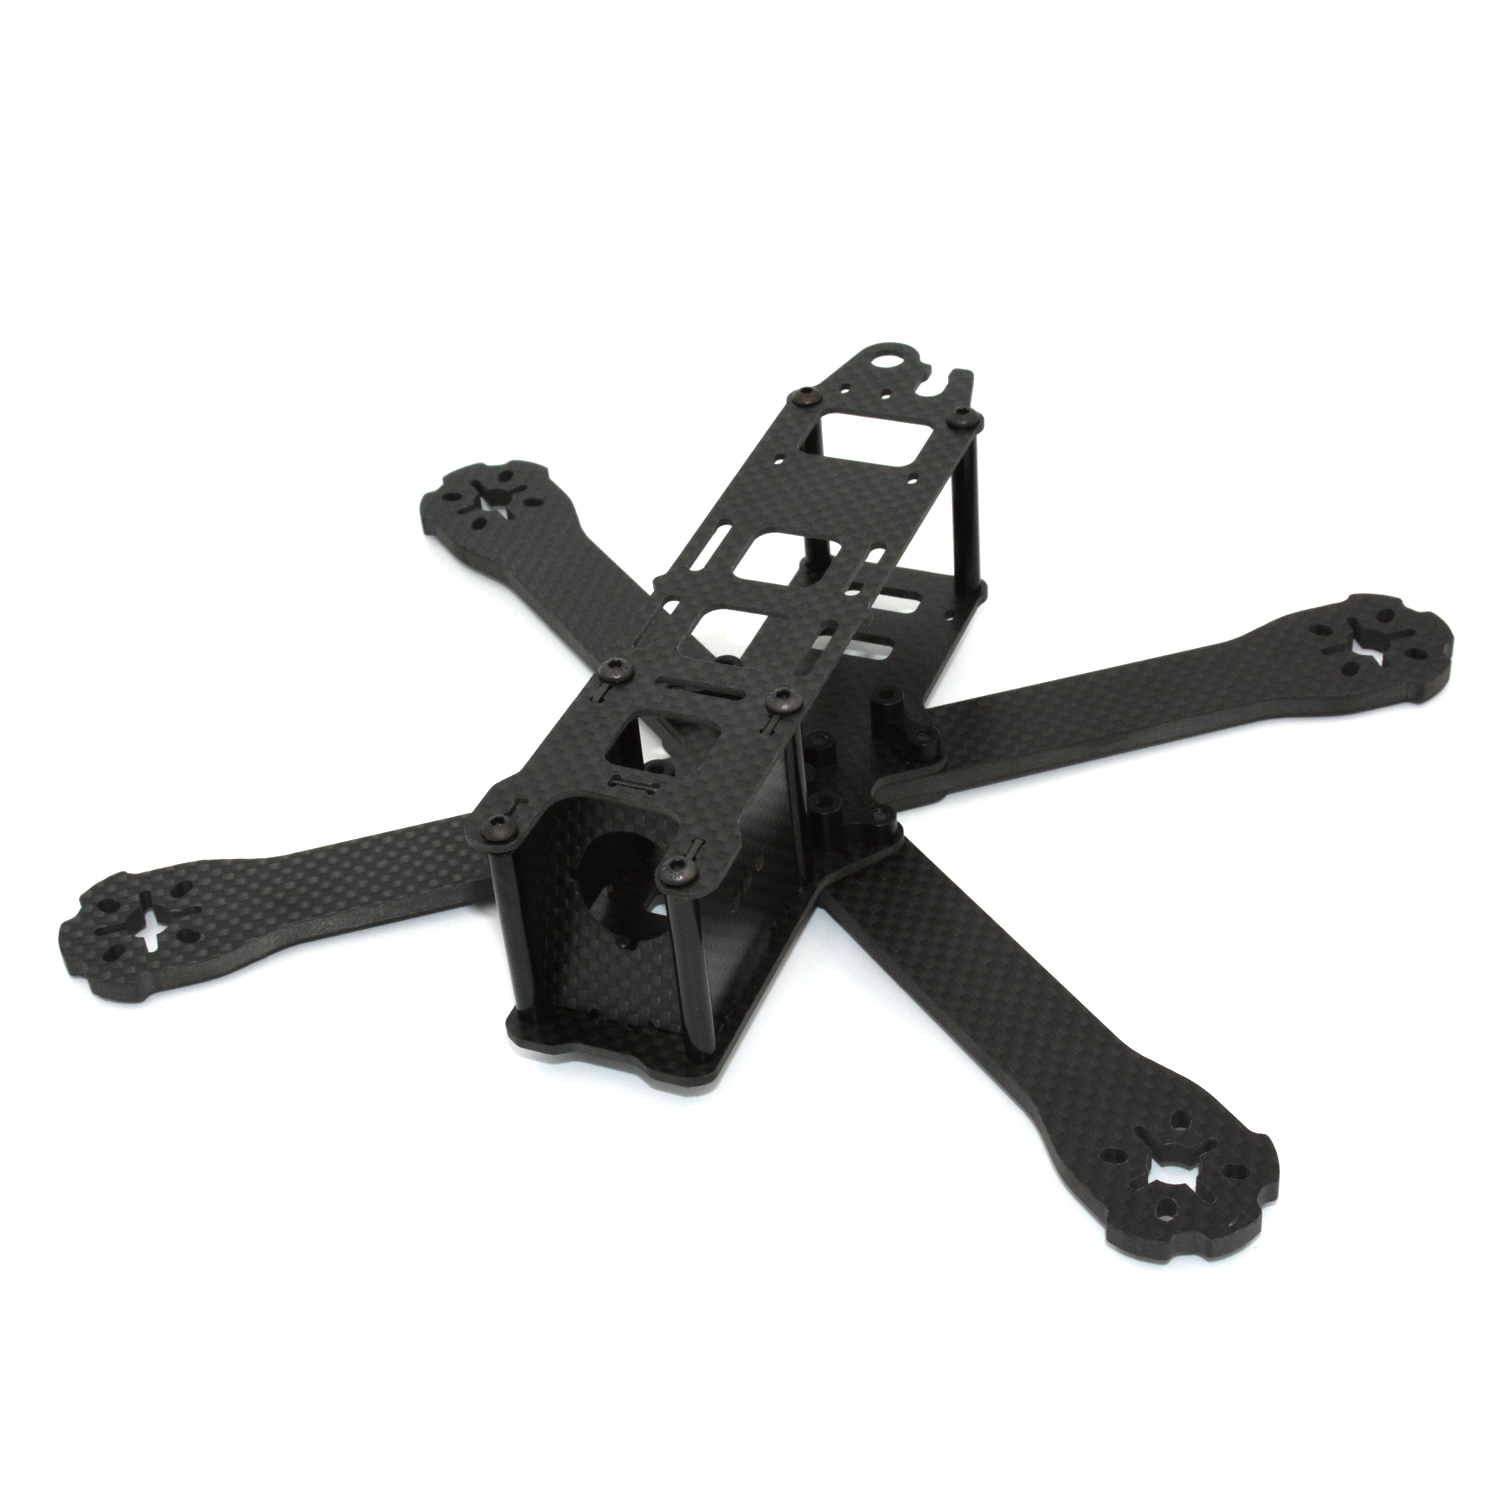 QAV220mm 260mm DIY Mini Drone FPV Quadcopter Pure Carbon Fiber 4mm QAV-R 220 260  Quadcopter carbon fiber frame diy rc plane mini drone fpv 220mm quadcopter for qav r 220 f3 6dof flight controller rs2205 2300kv motor